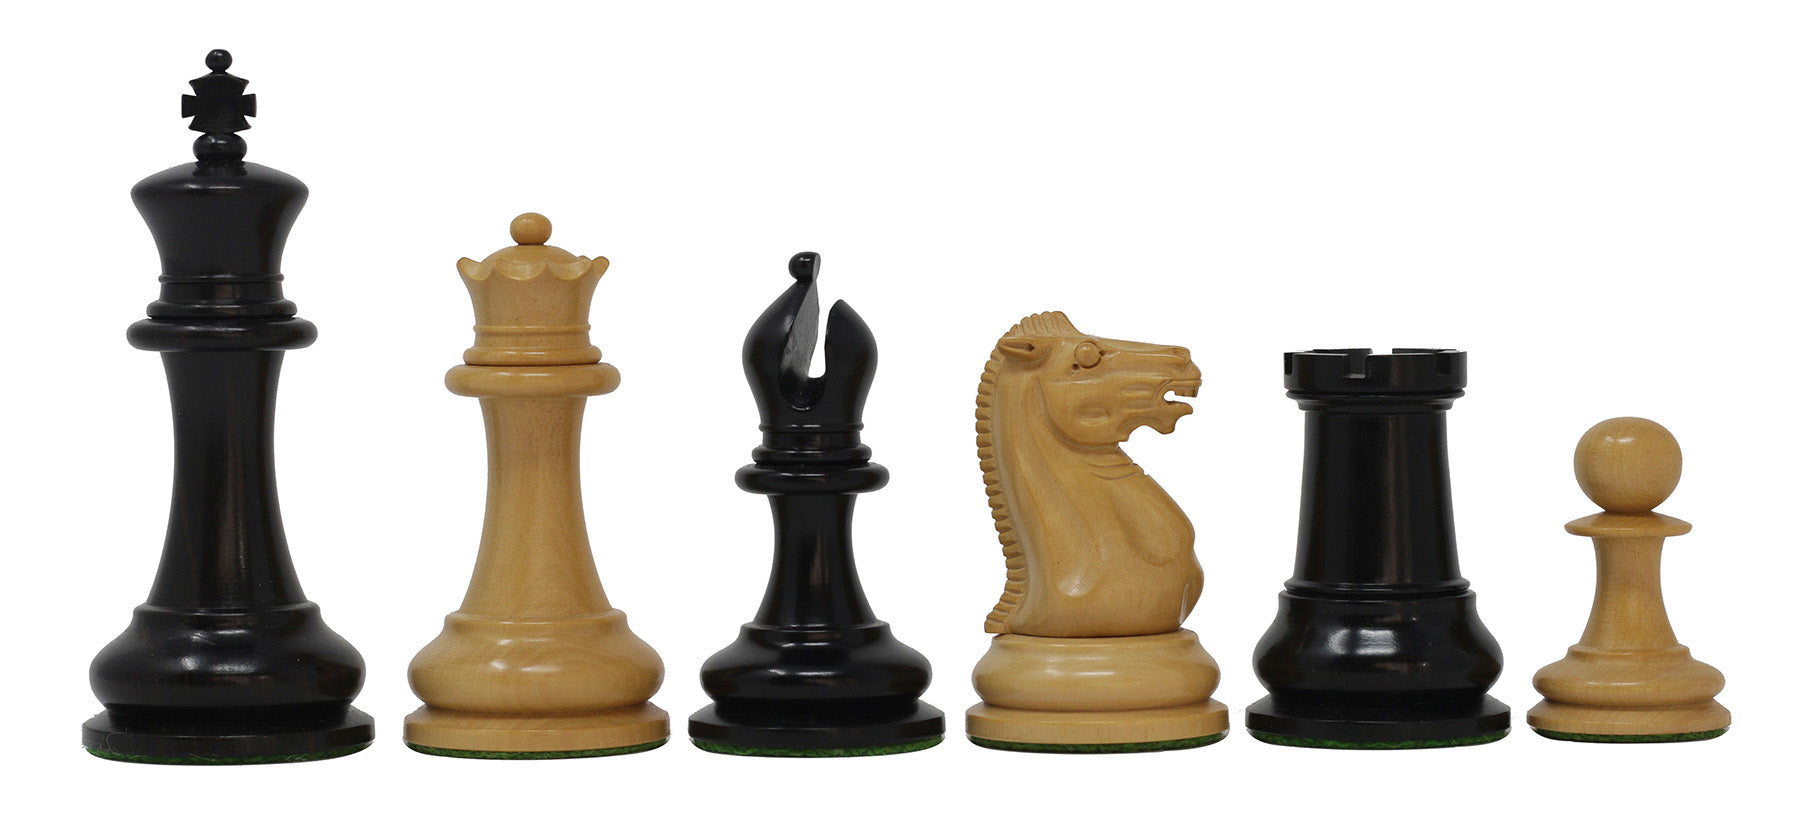 "Nathaniel 1849 Antique Reproduction Vintage 3.75"" Ebony/Box Wood (without antique look) Chess Set"